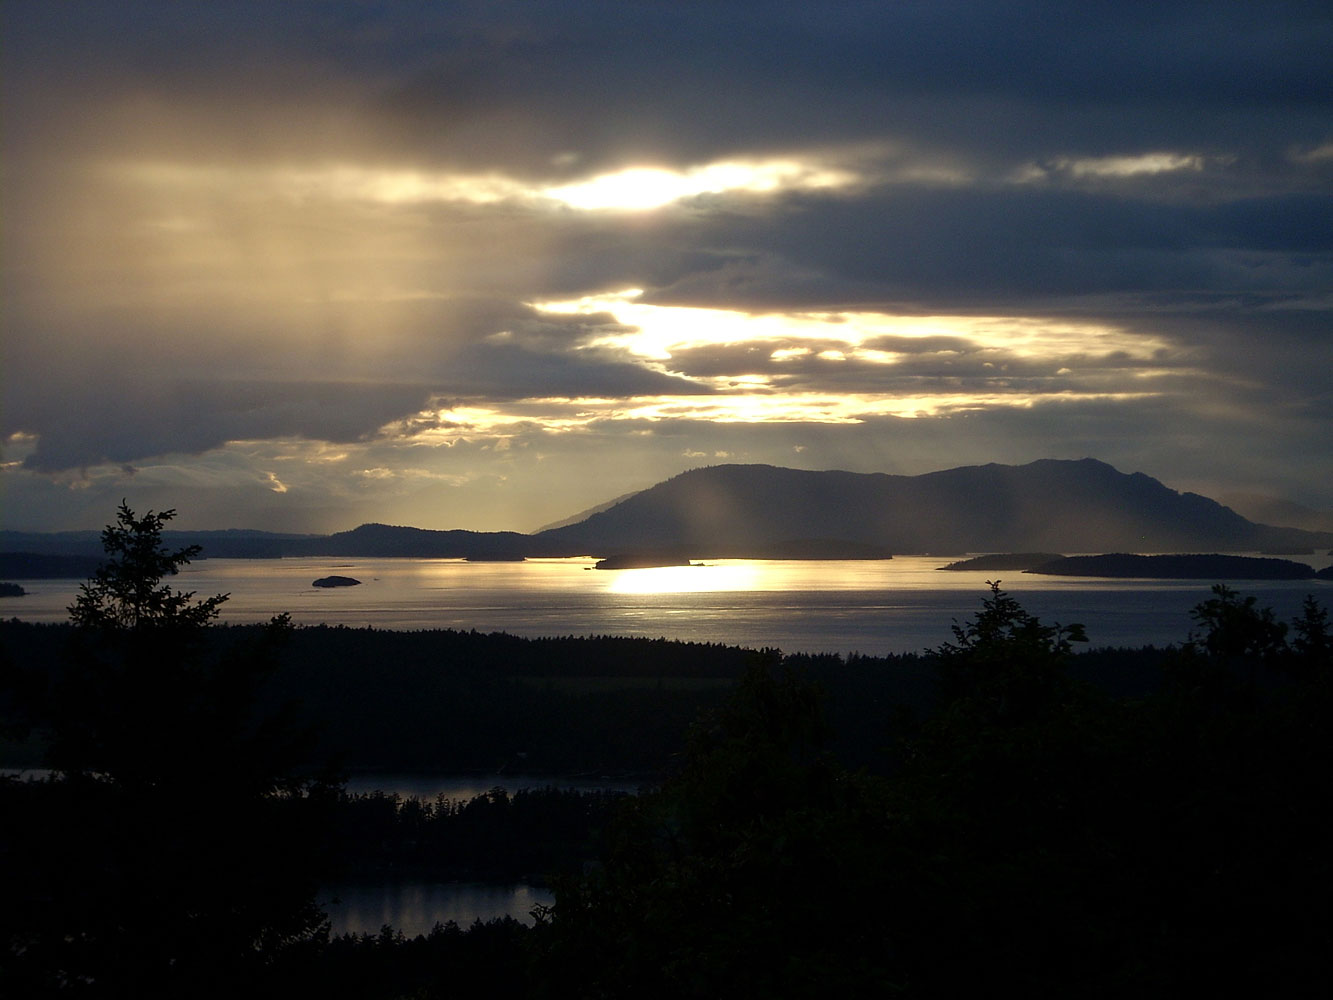 The San Juan Islands National Monument (Washington): A chain of 450 islands located in Washington State's Puget Sound, the monument offers visitors the chance to experience the natural beauty of the undeveloped, rugged landscape.